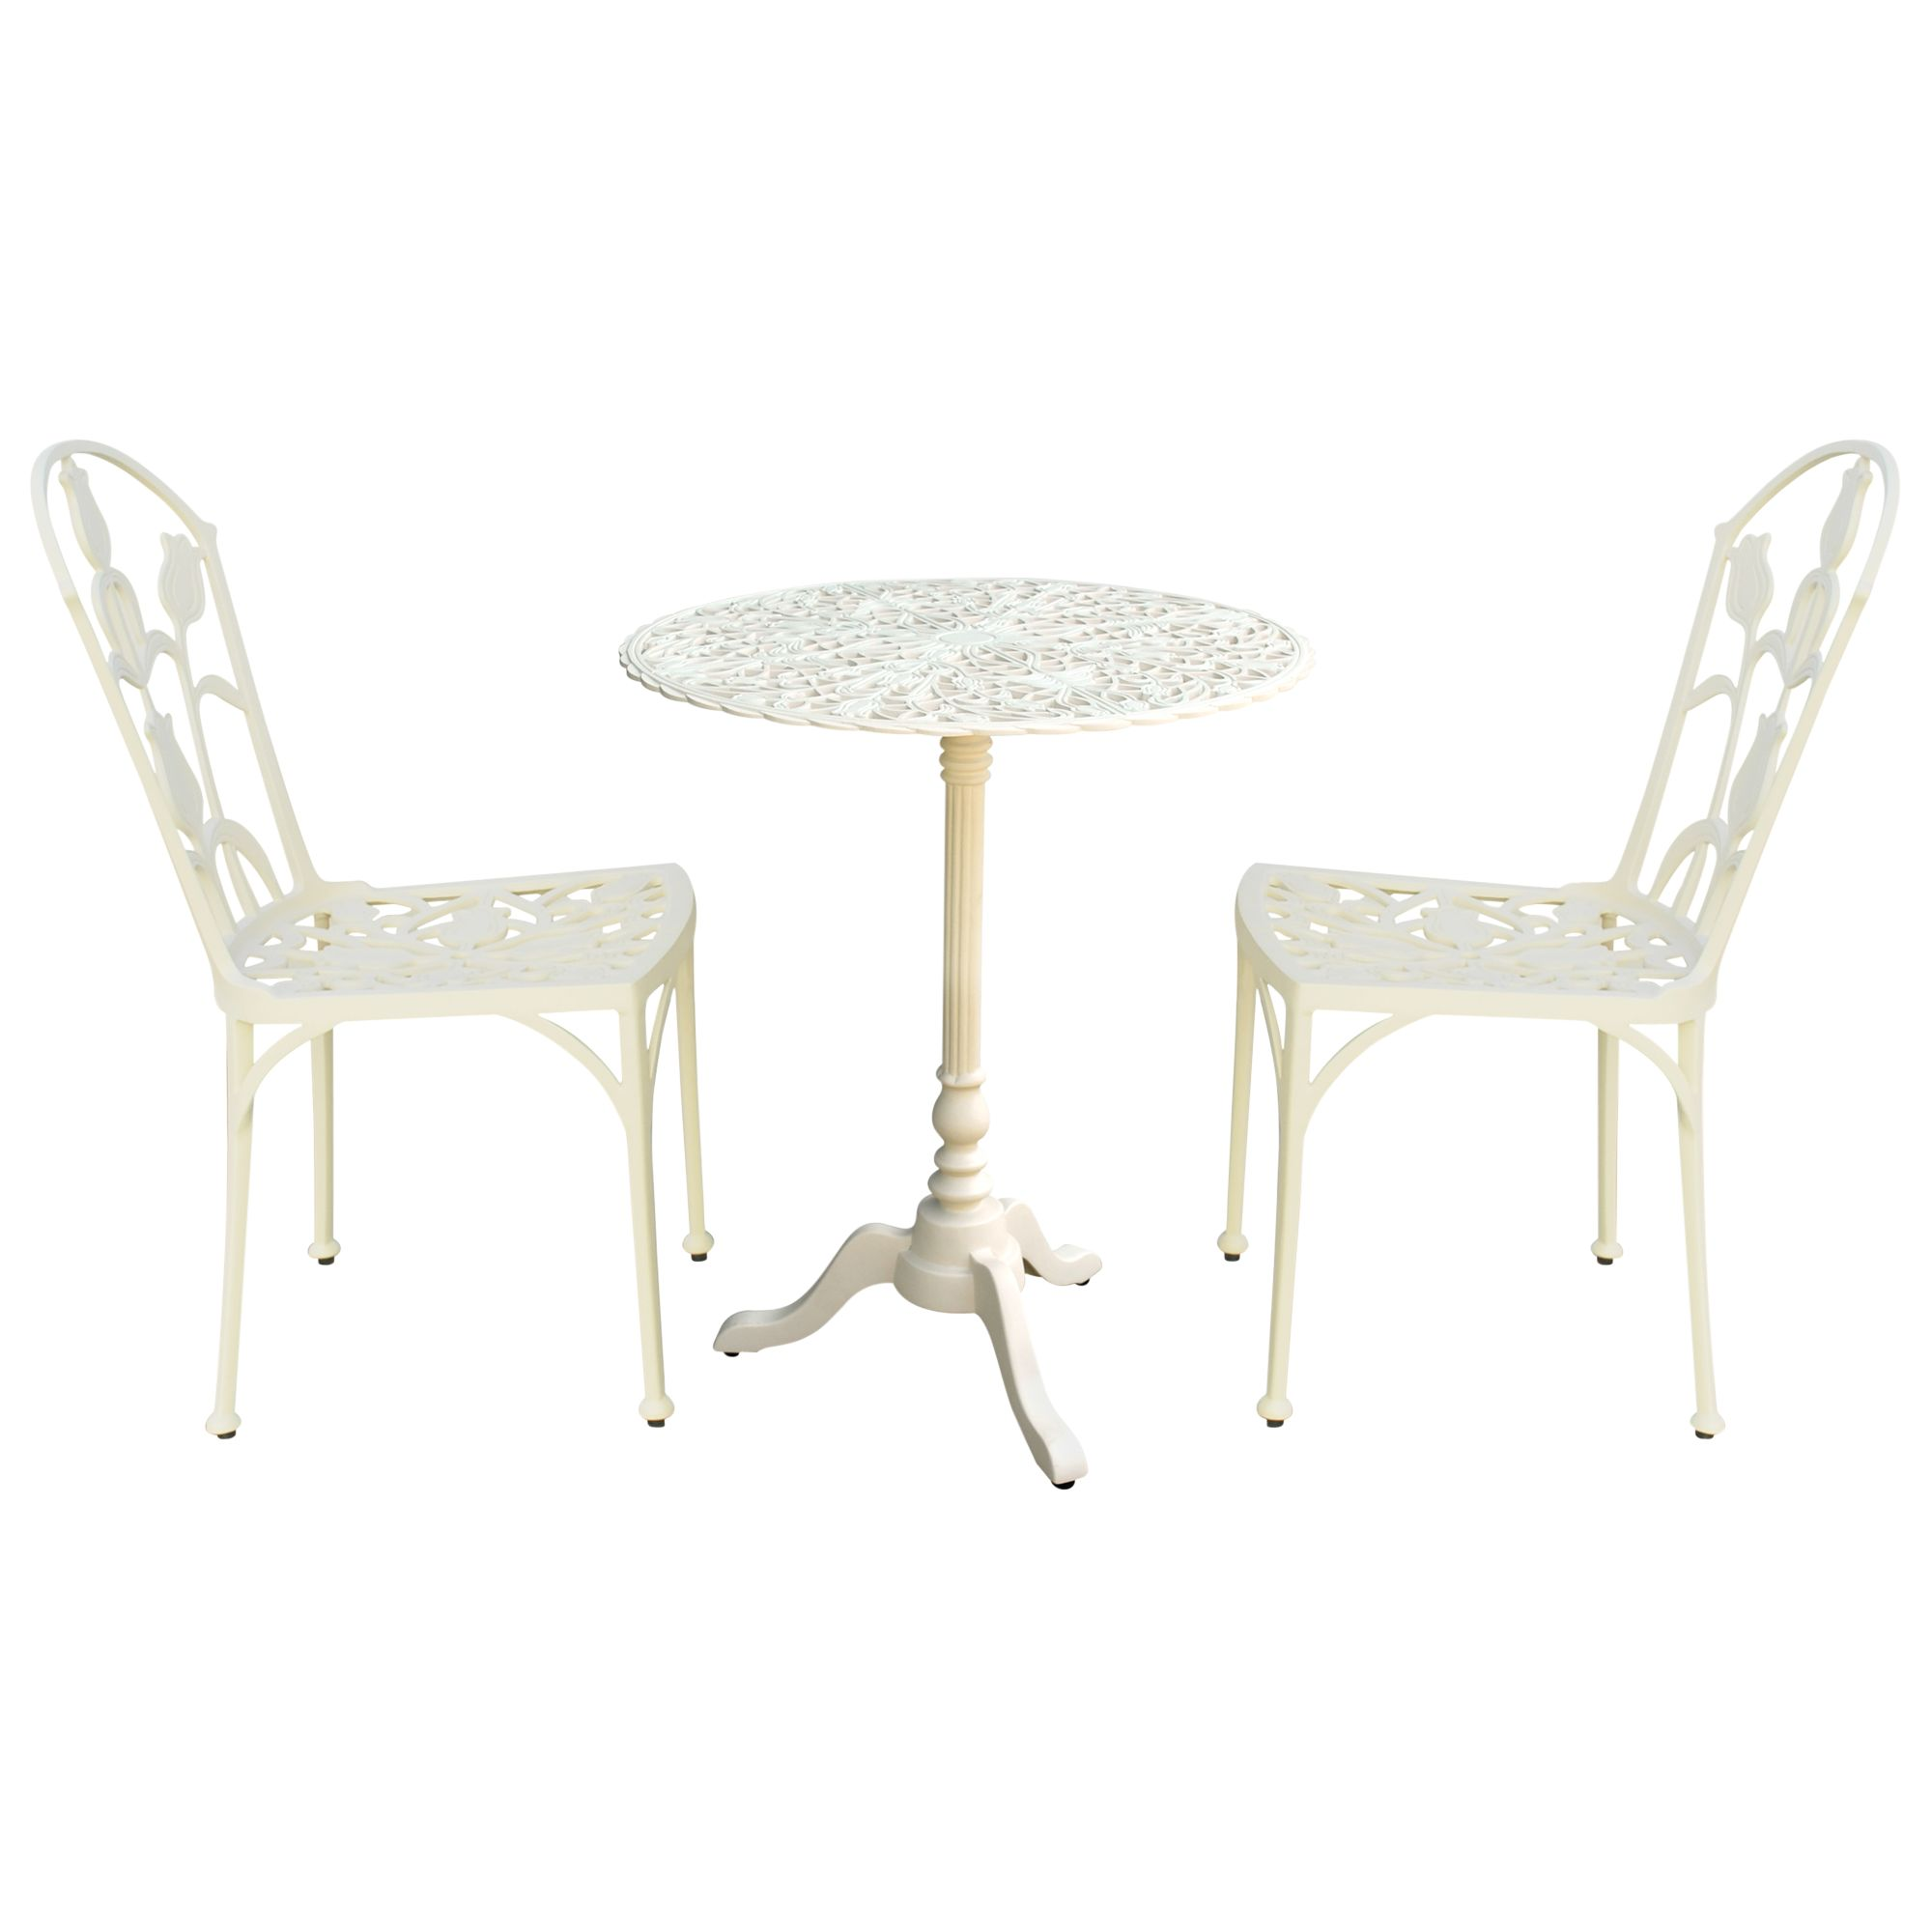 RHS Tulipamania Pedestal Table Set, Purissima, 60cm